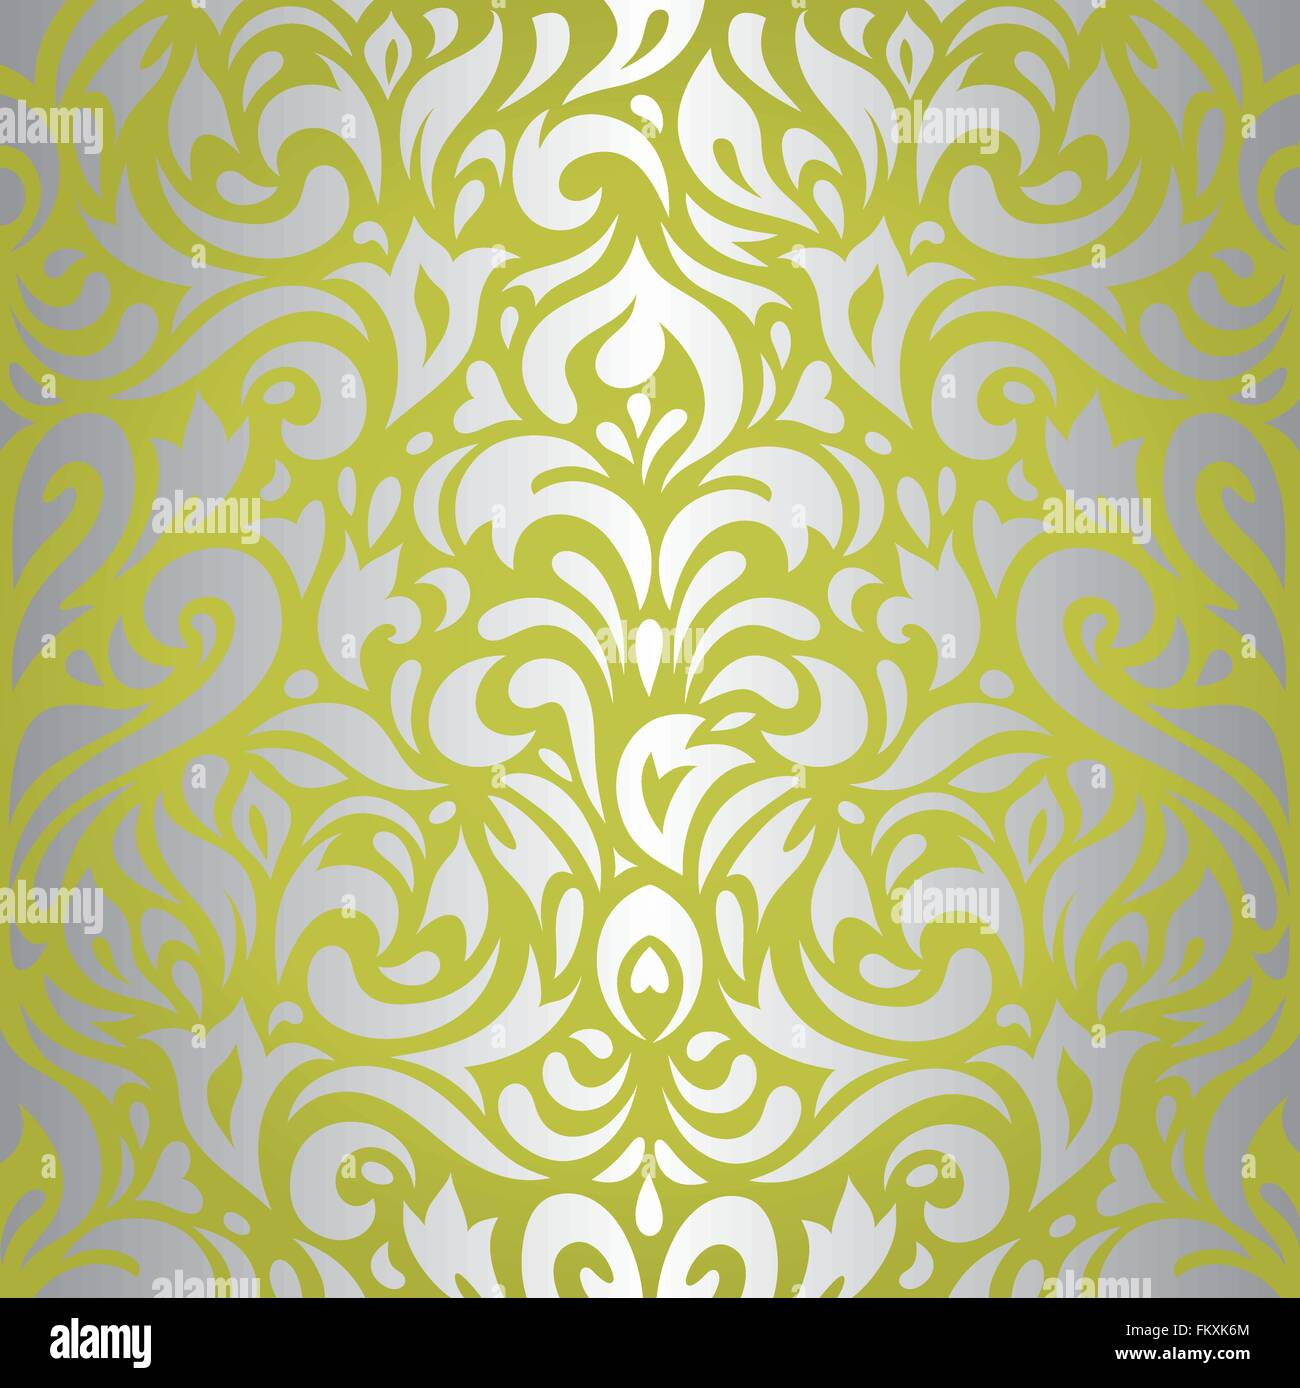 Floral Green Silver Vintage Retro Wallpaper Design